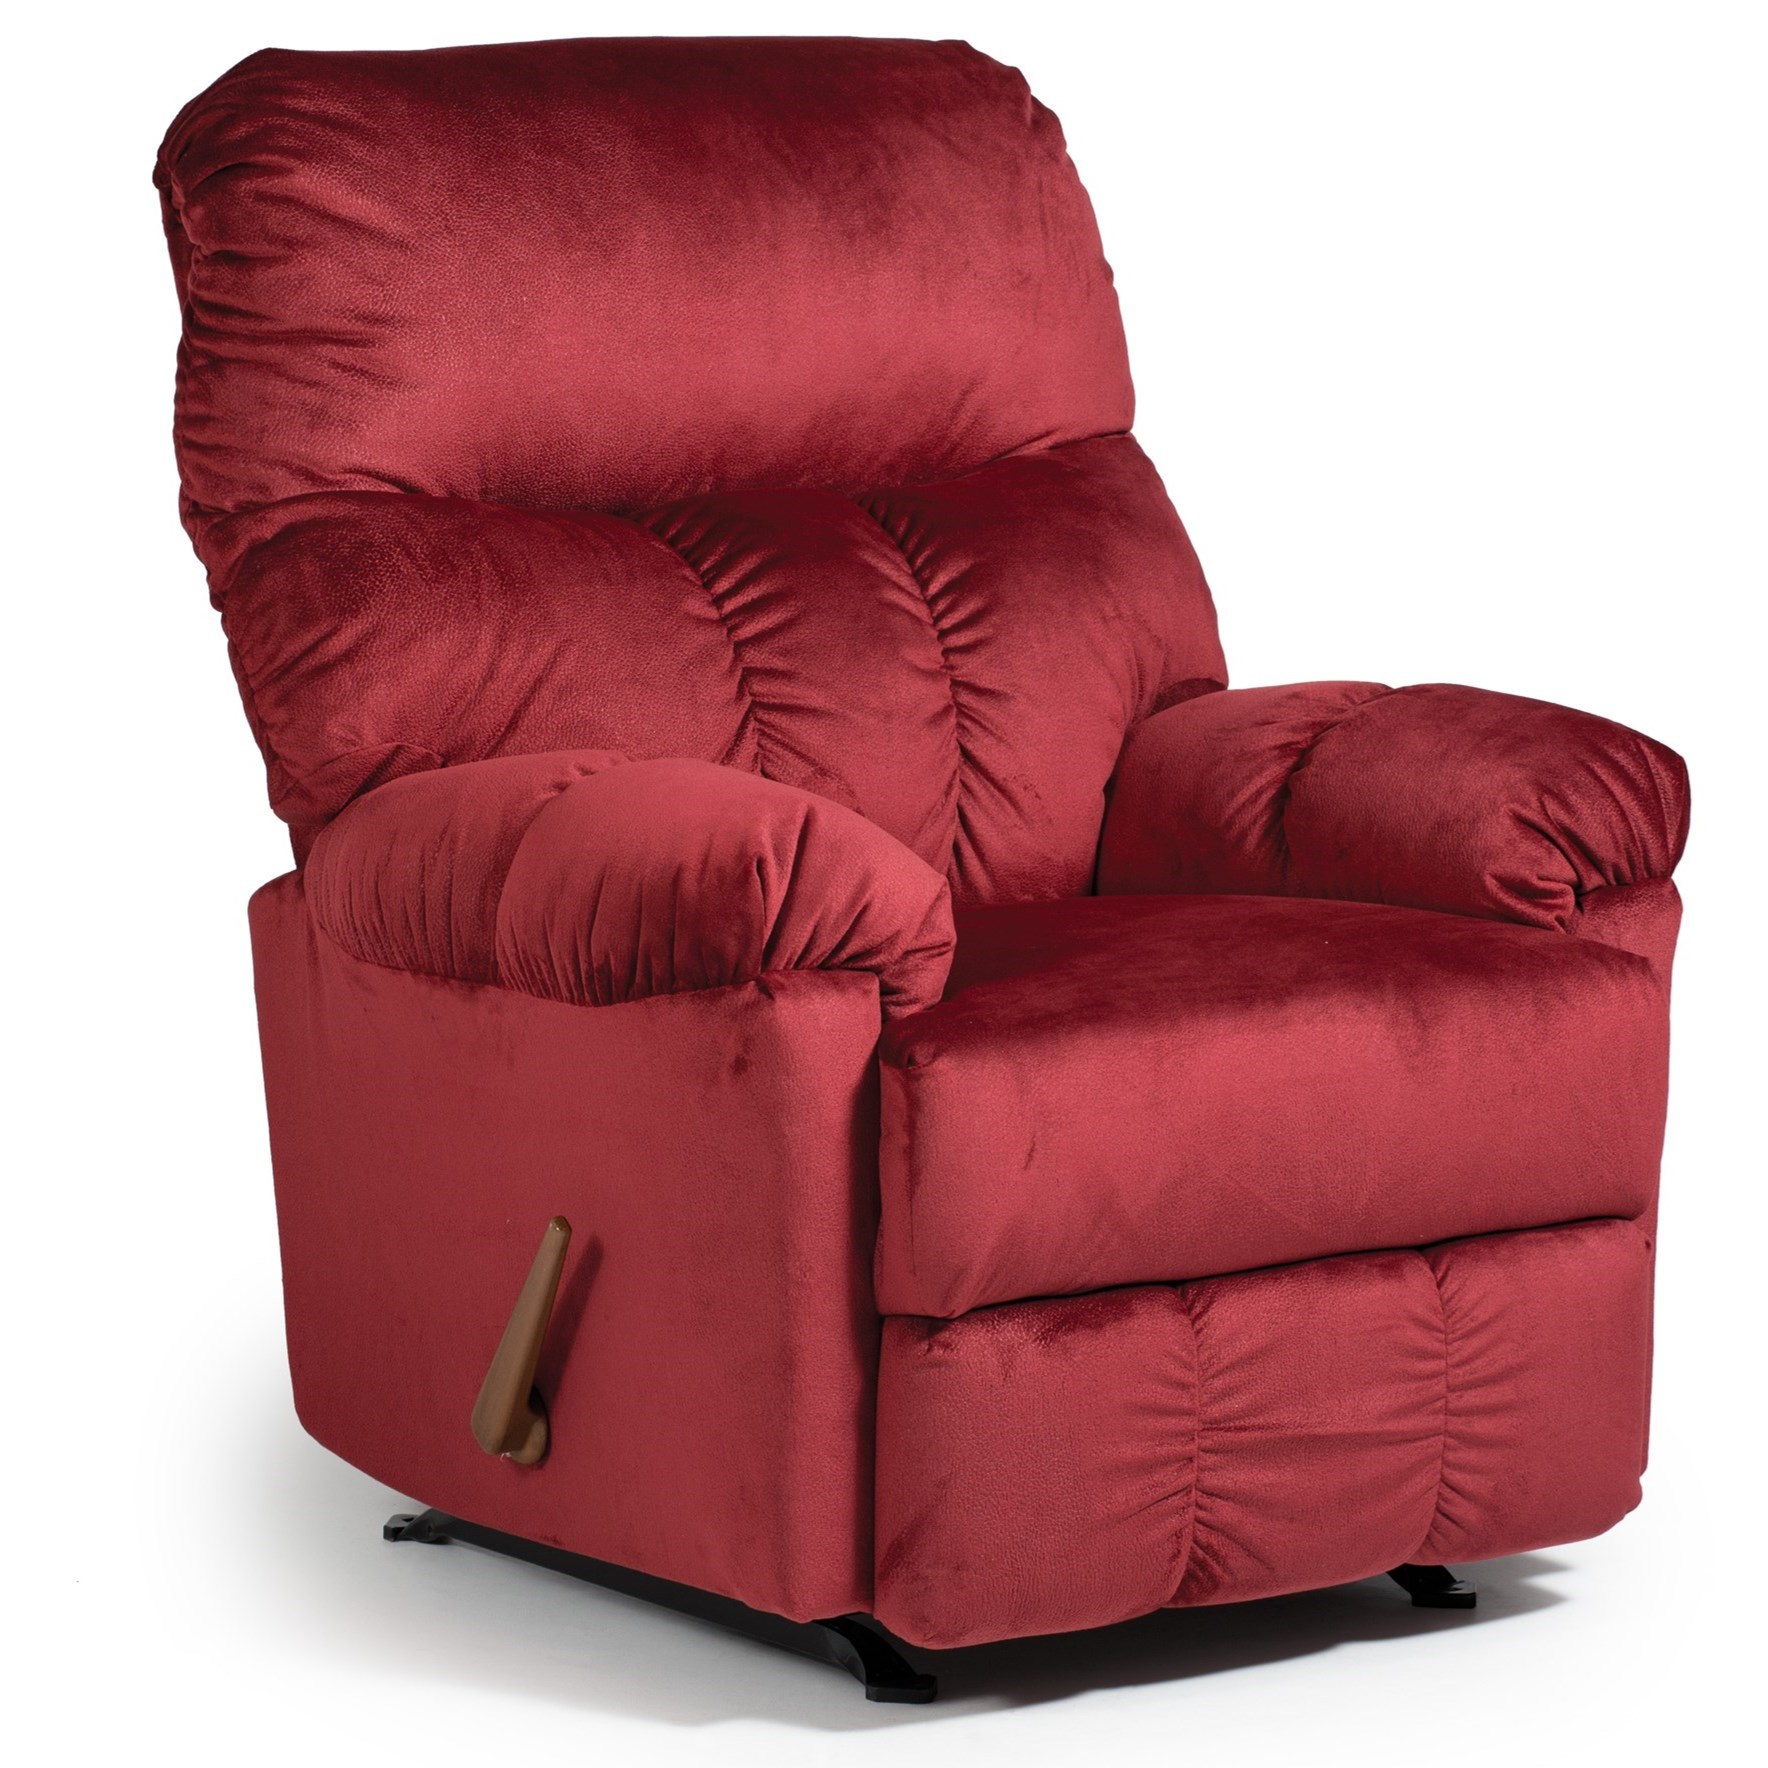 Best Home Furnishings Ares Ares Rocker Recliner - Item Number: 2MW37